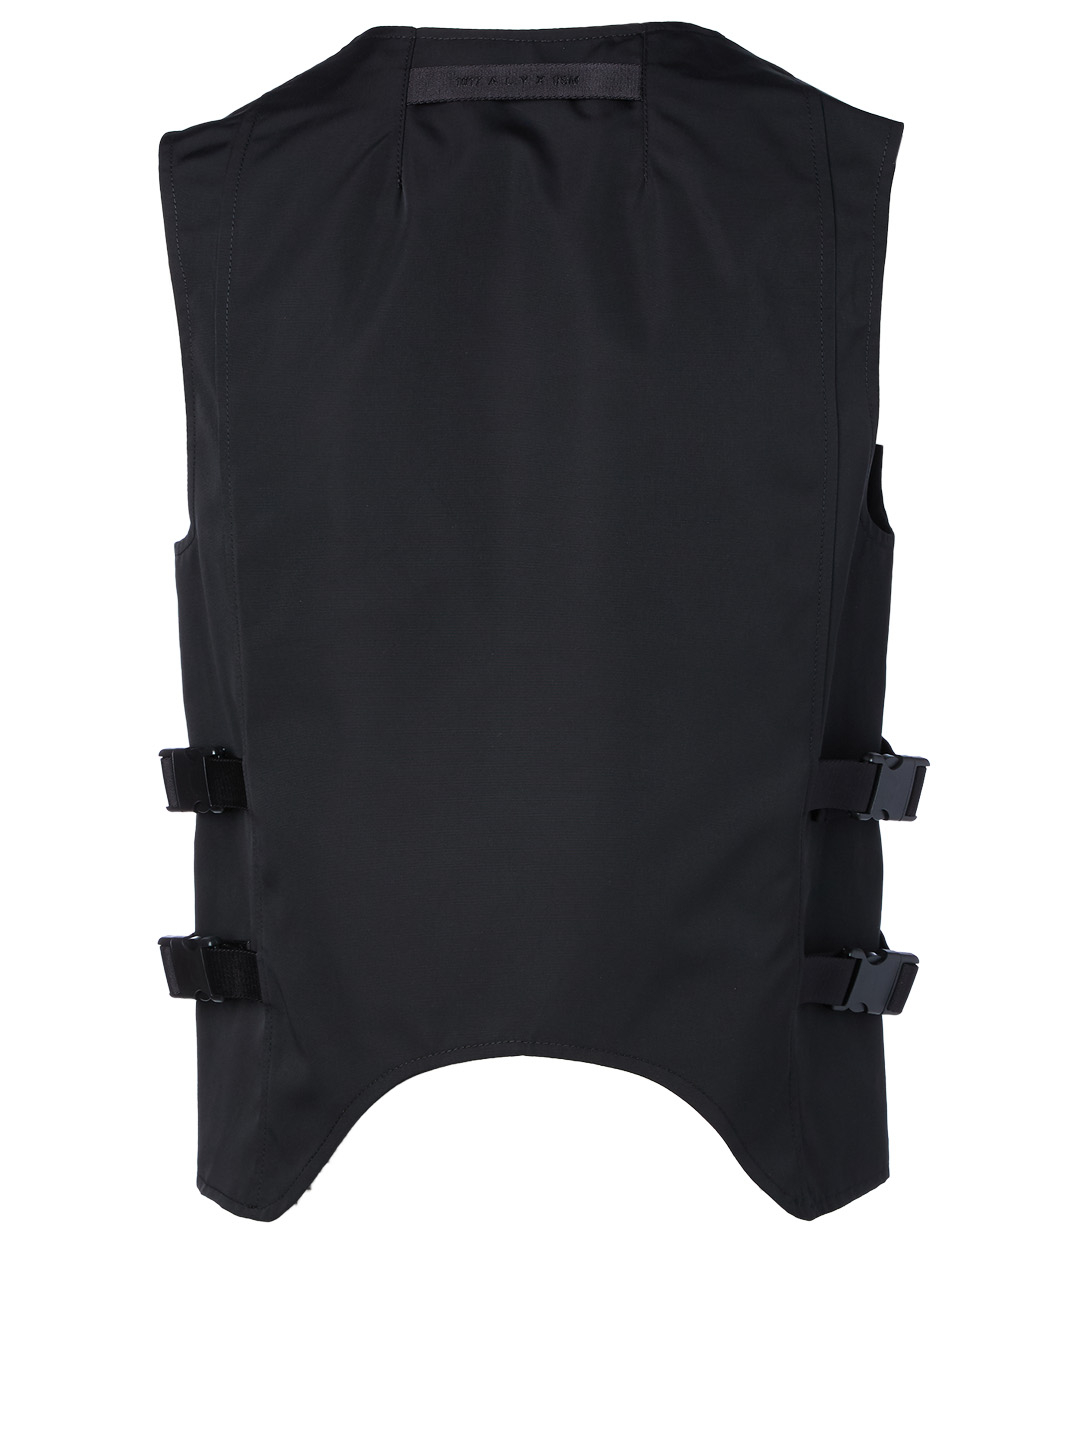 1017 ALYX 9SM Trooper Brace Vest Men's Black